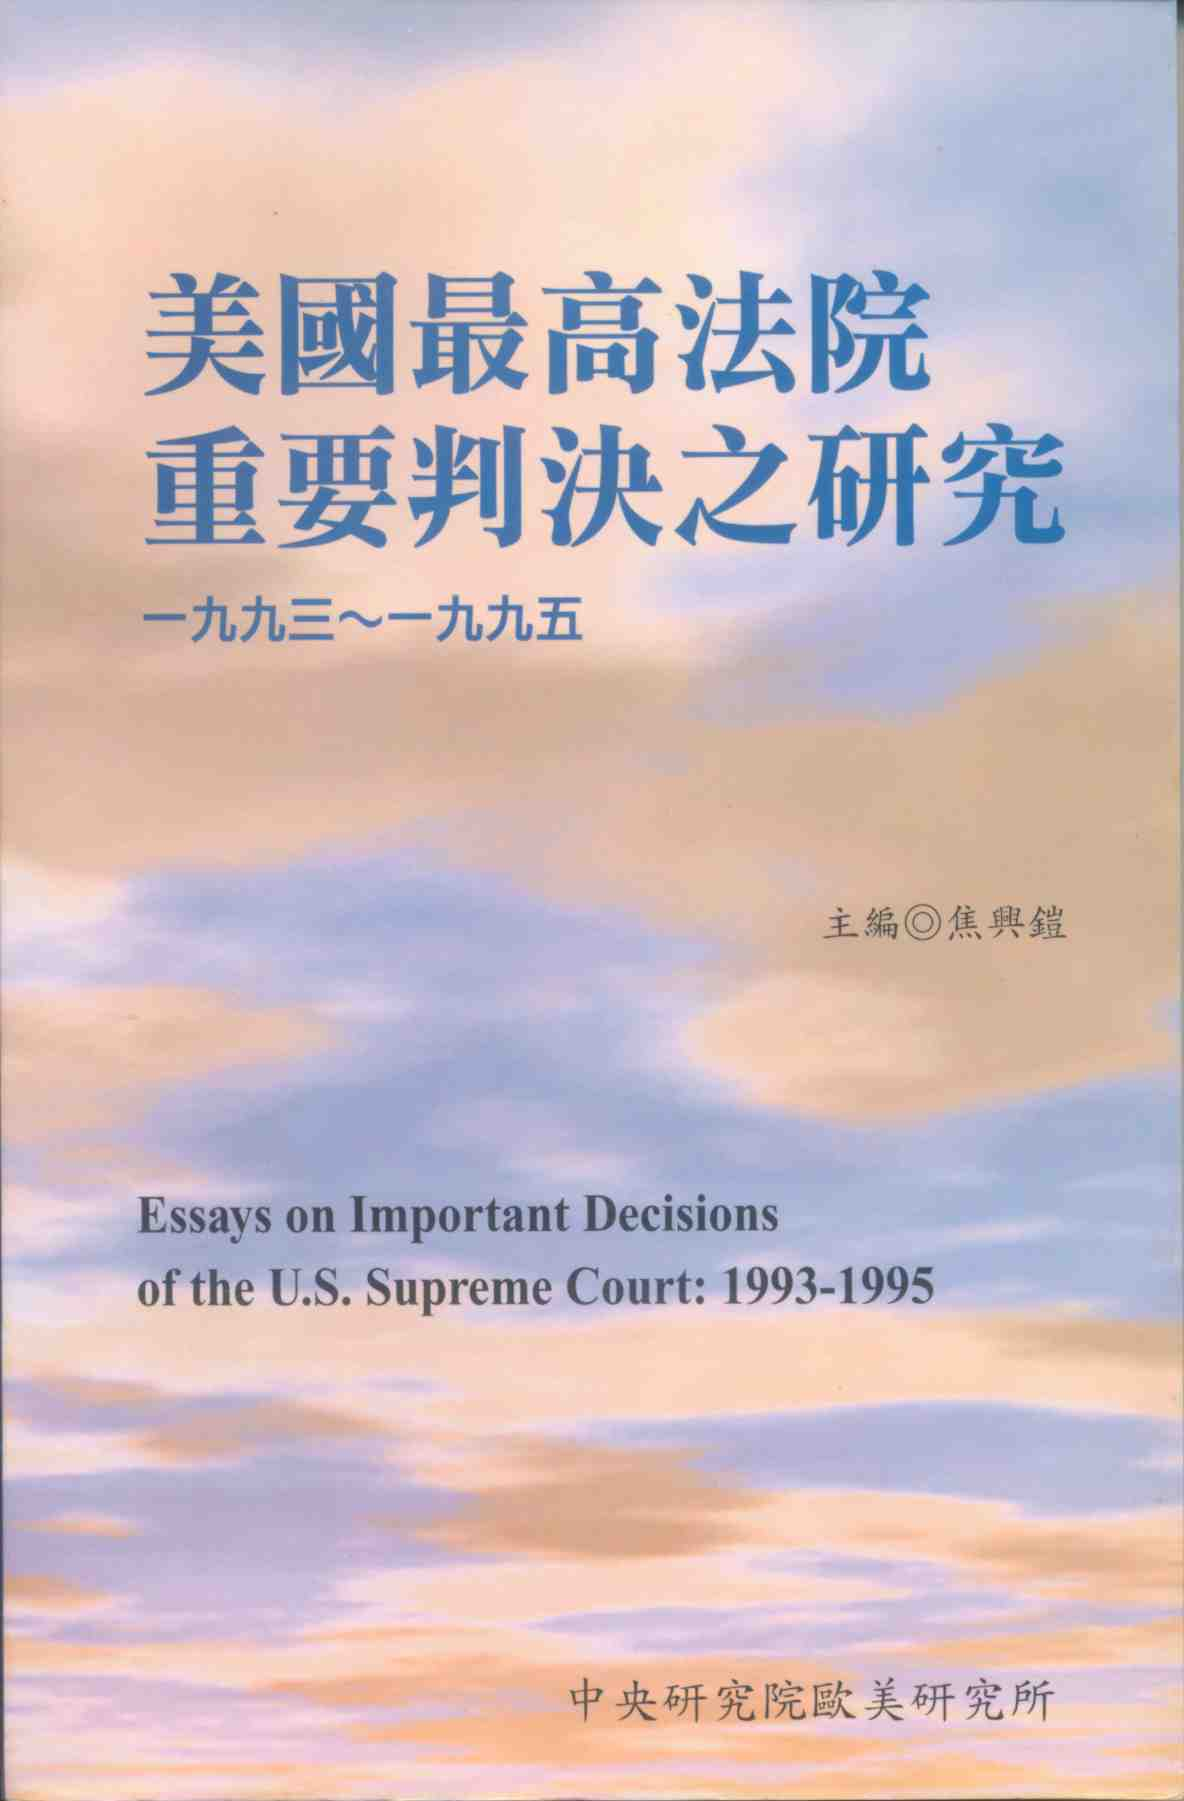 美國最高法院重要判決之研究:1993~1995